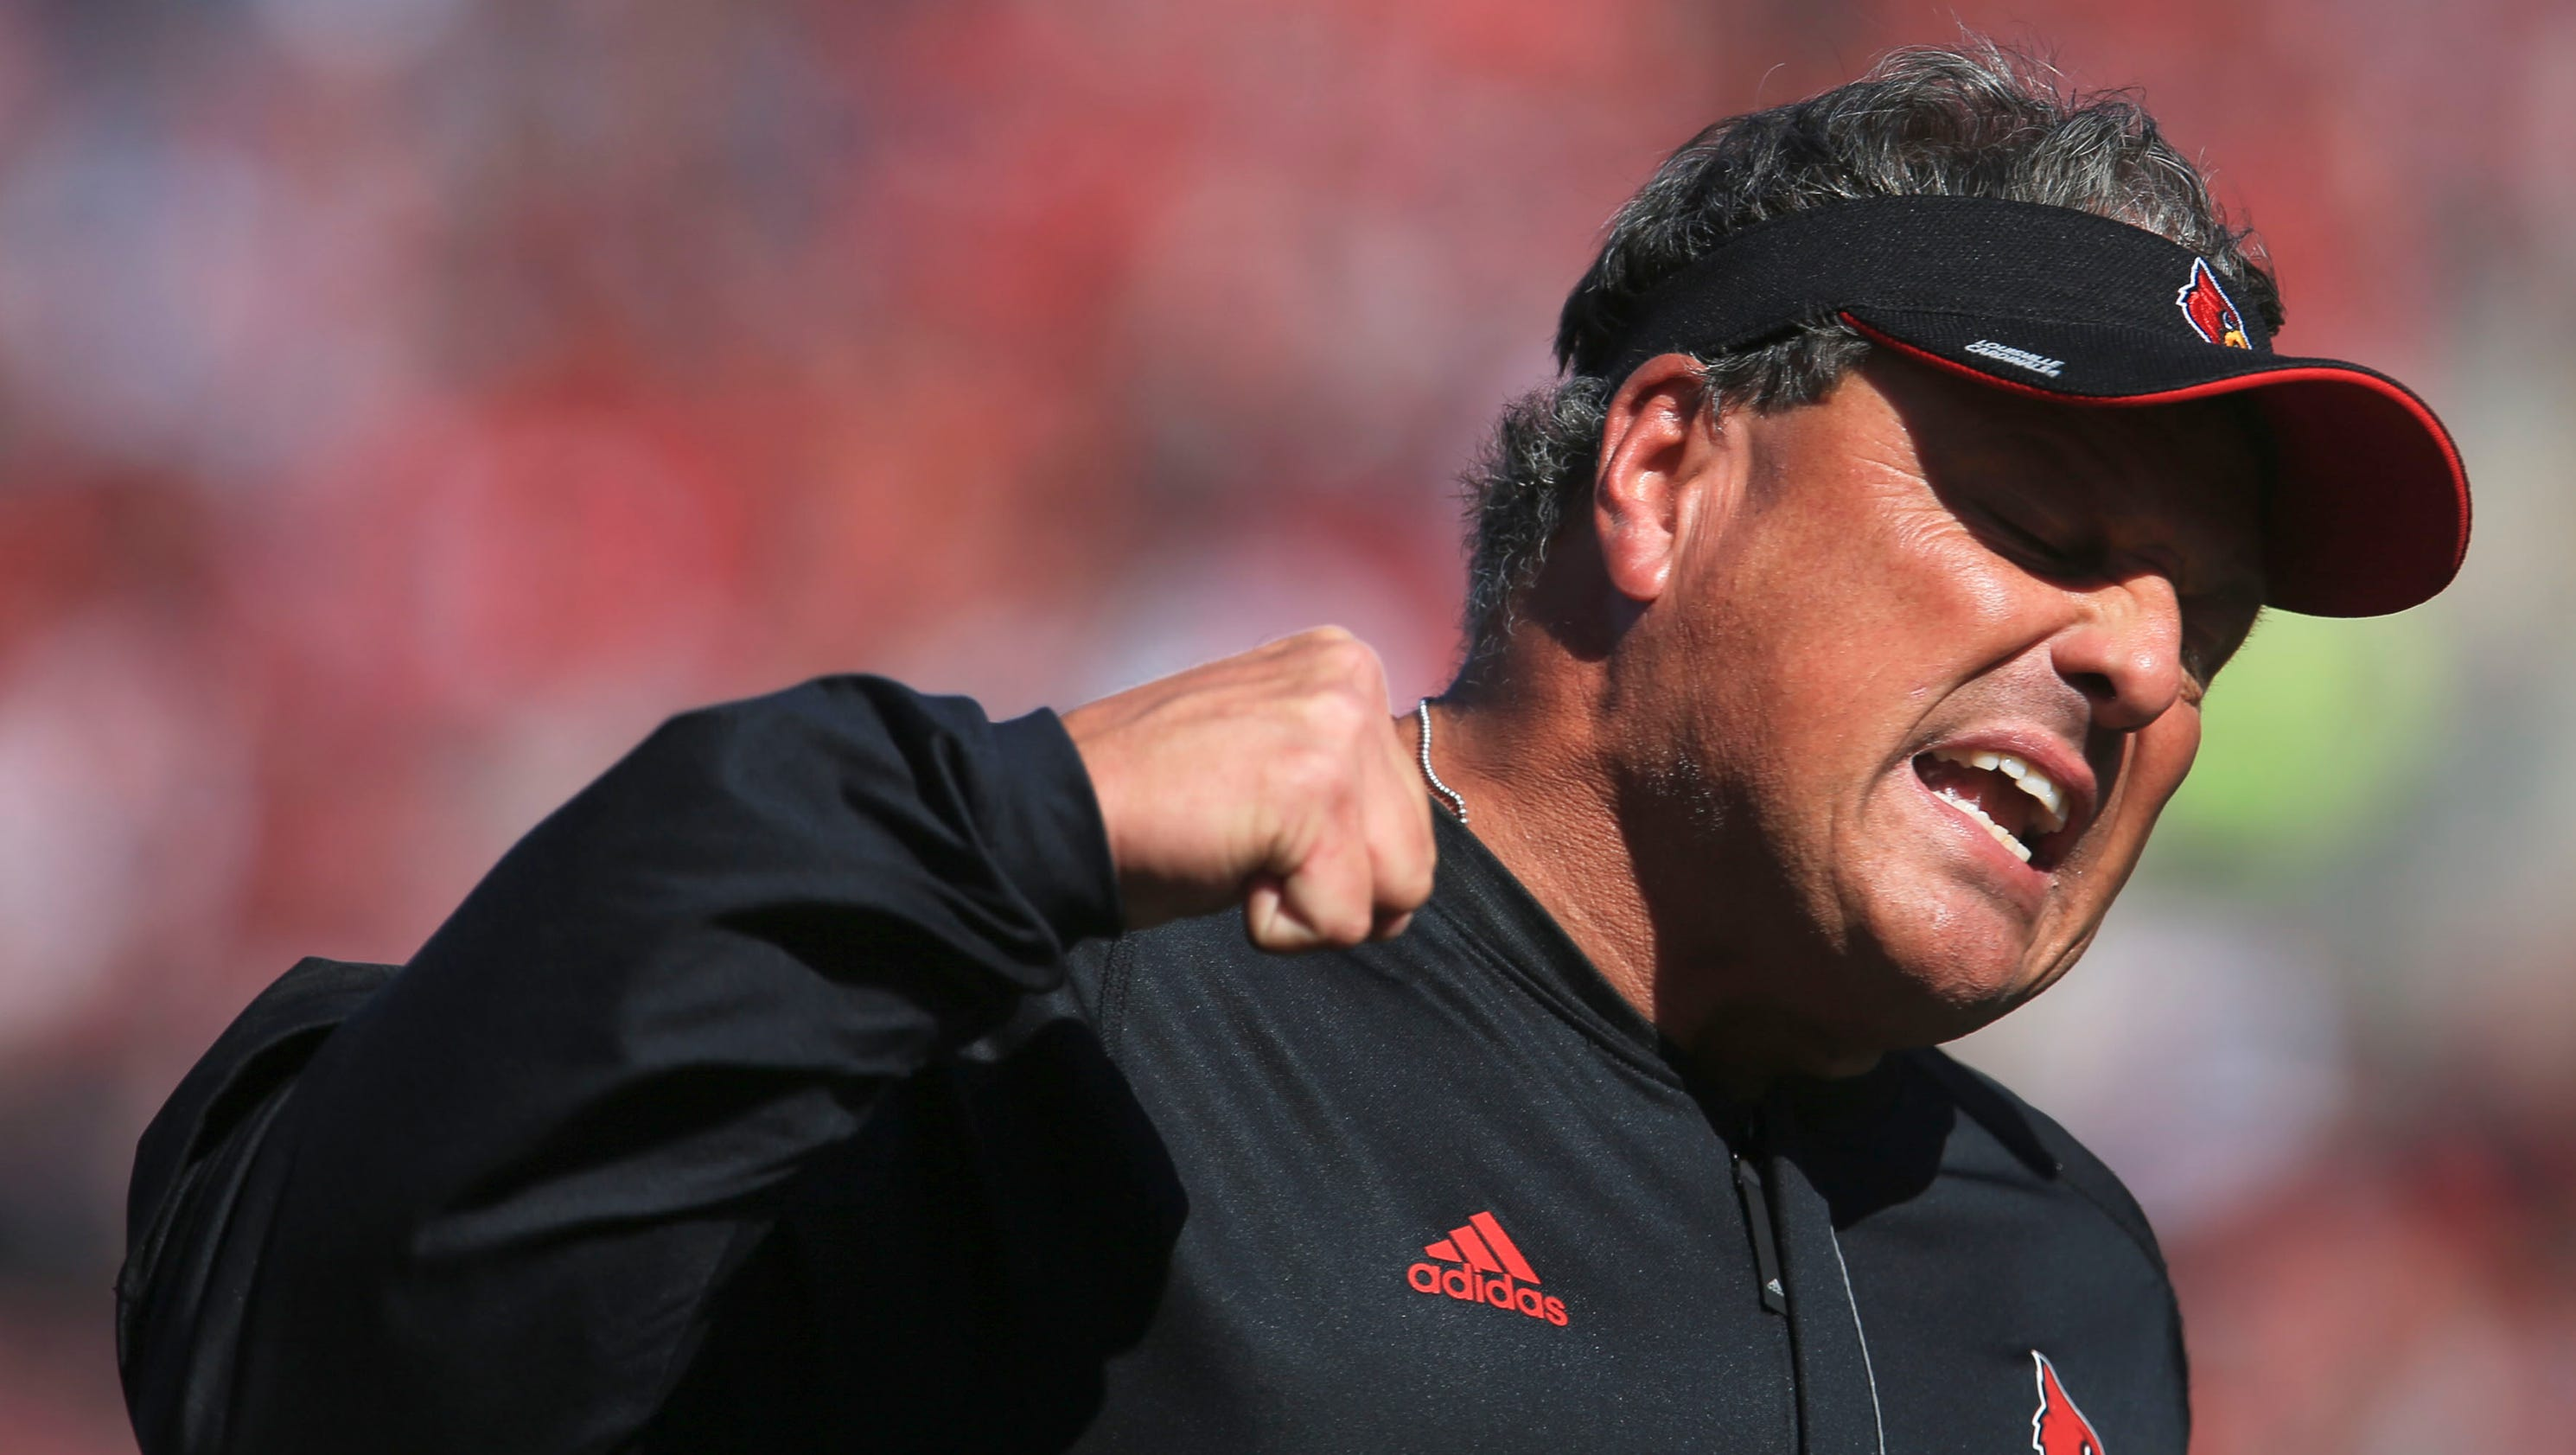 636127513706008726-uofl-ncstate-toddgrantham-1